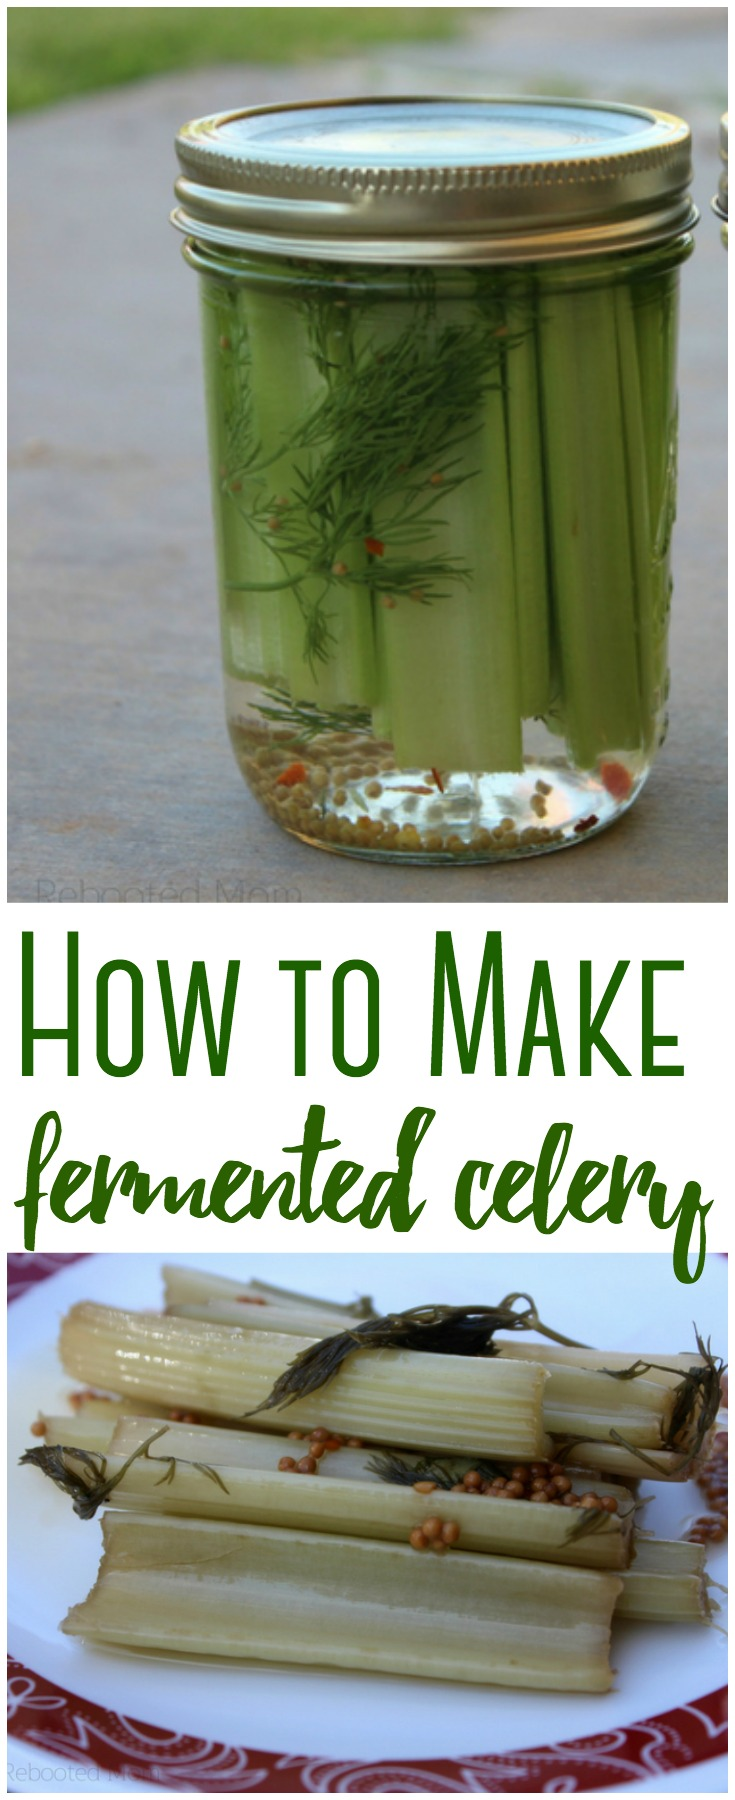 Looking for ways to get healthy, probiotic foods into your diet? Fermented celery only takes 5 minutes and ferments in 5-7 days.